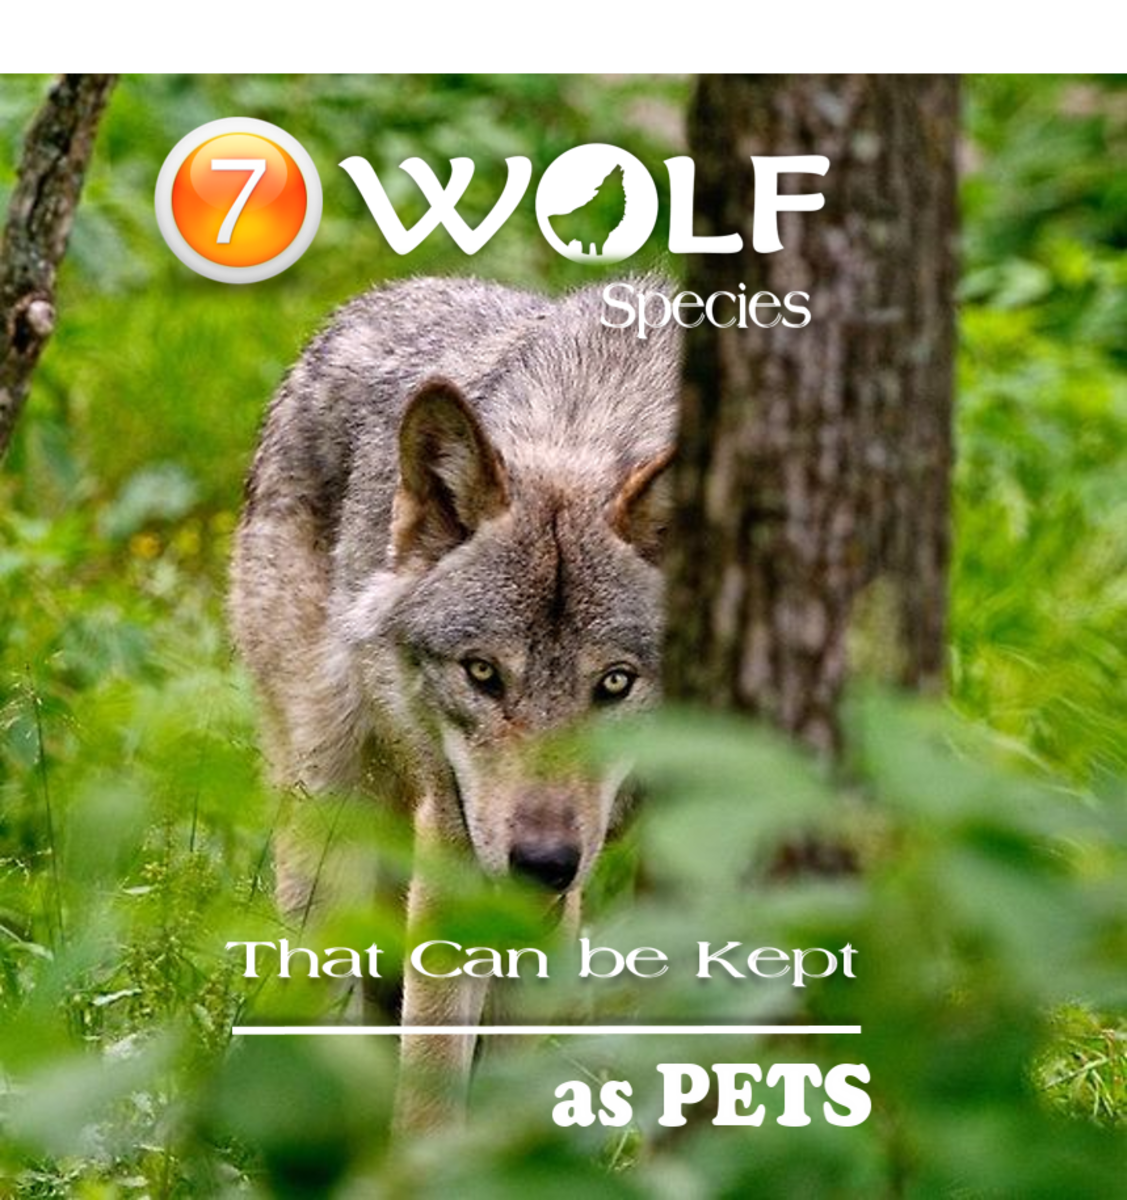 7 Social Wolves That Can be Kept as Pets